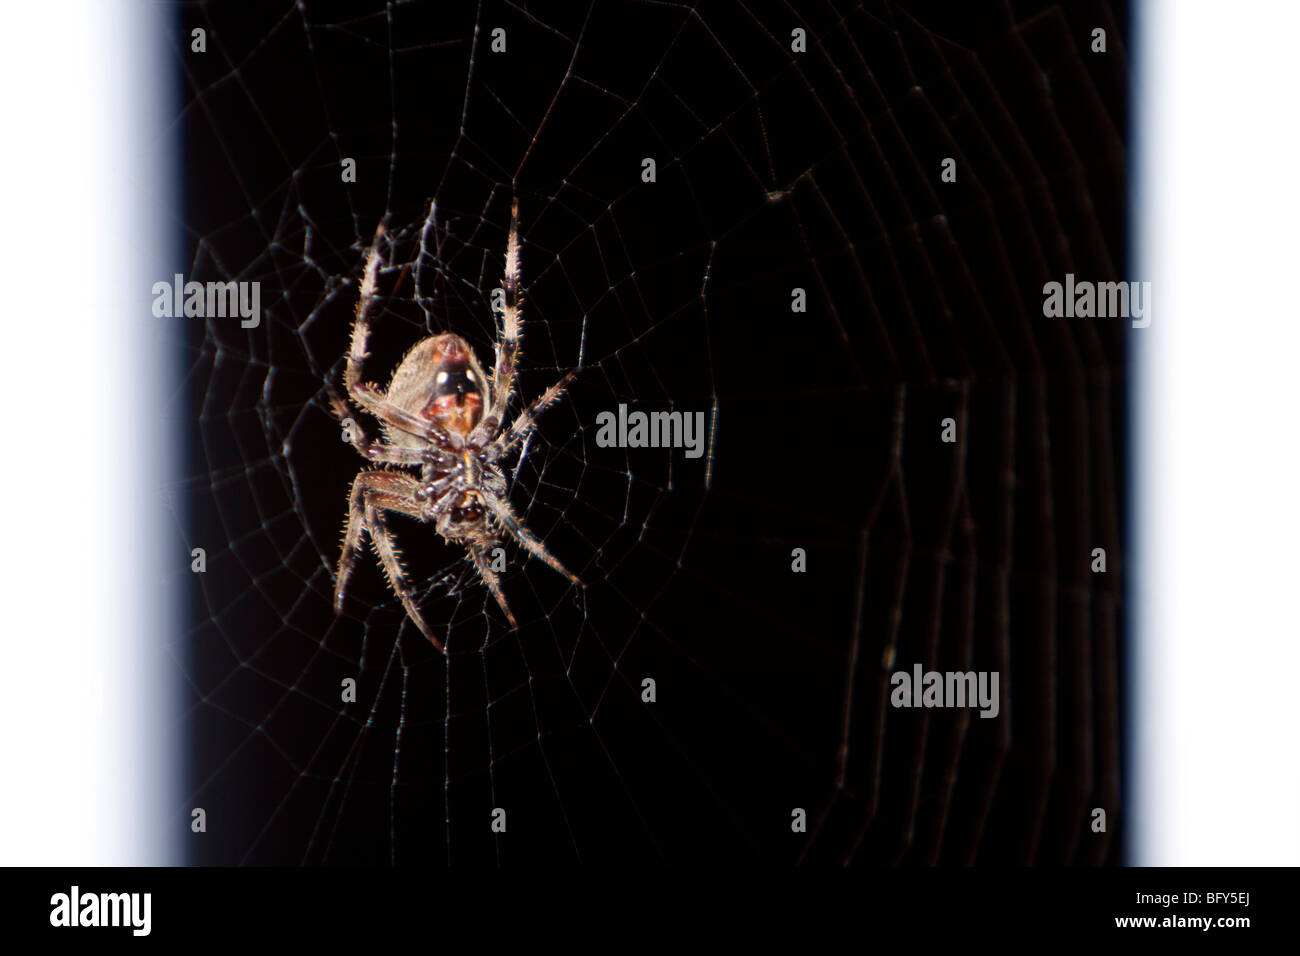 A very large barn spider (Araneus cavaticus) at night. - Stock Image